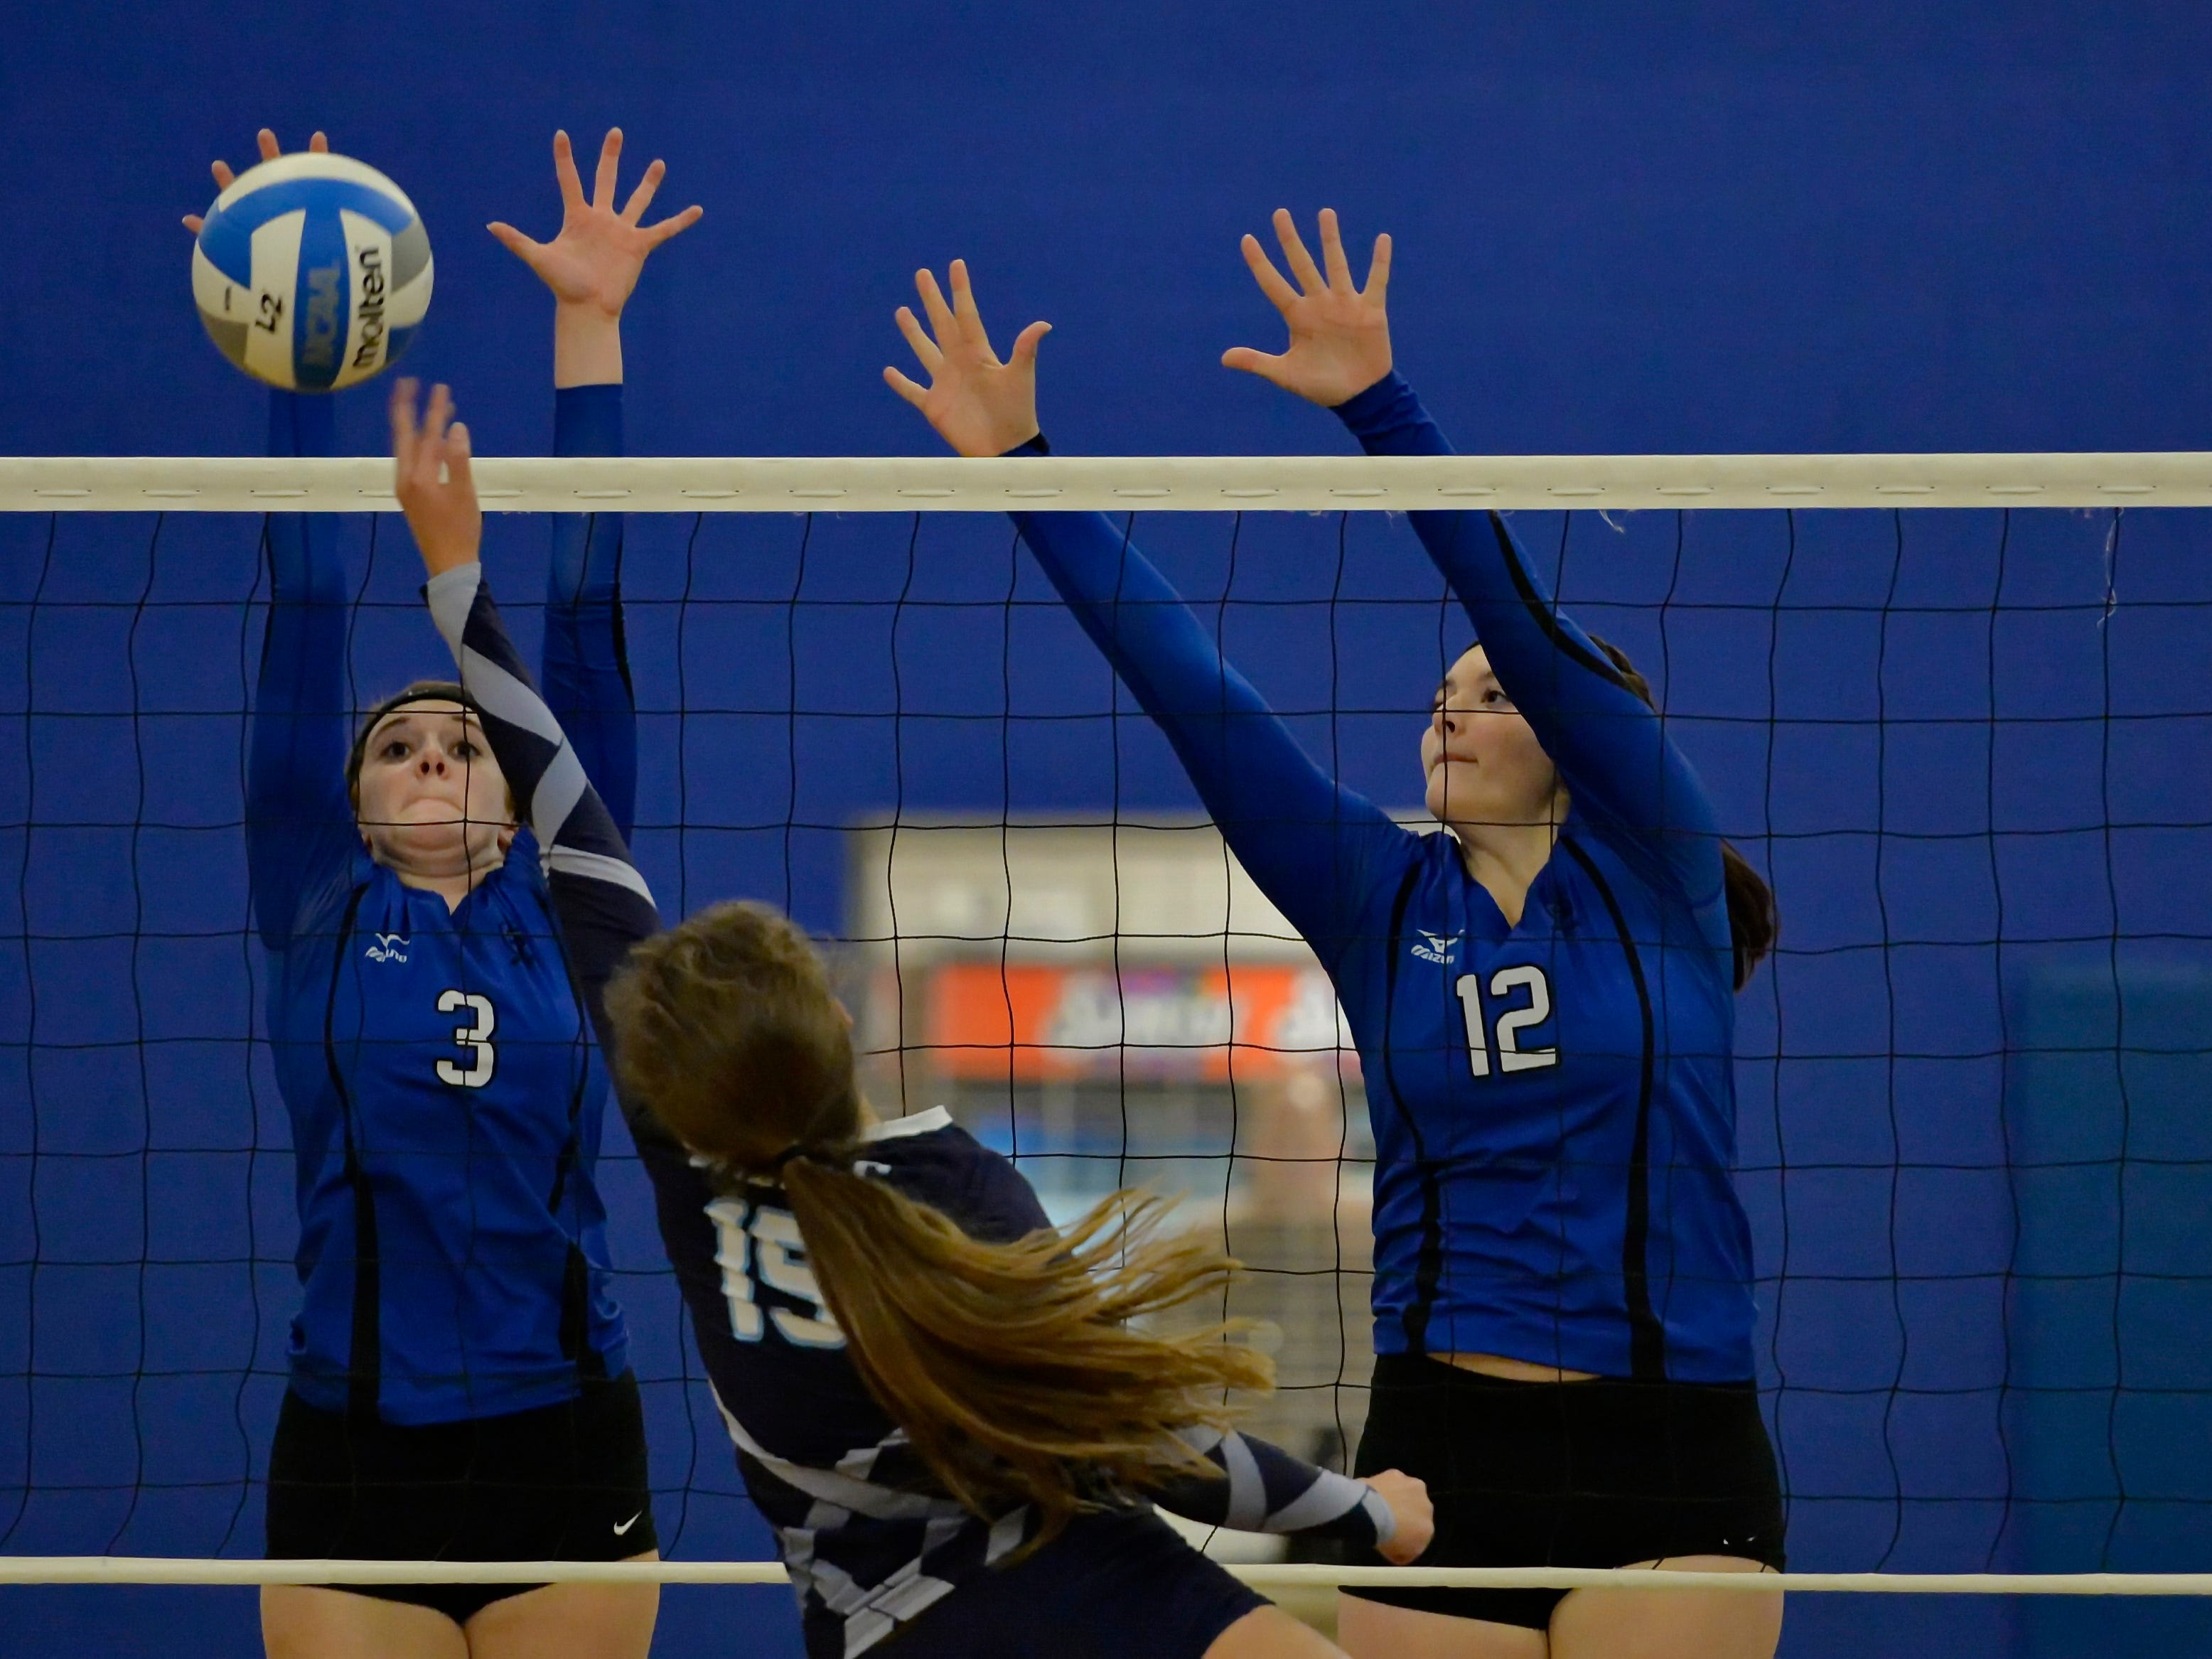 St. Joe's Kaely Thompson (3) and Michelle Malsch block a shot by Southside Christian's Emma Witt Tuesday